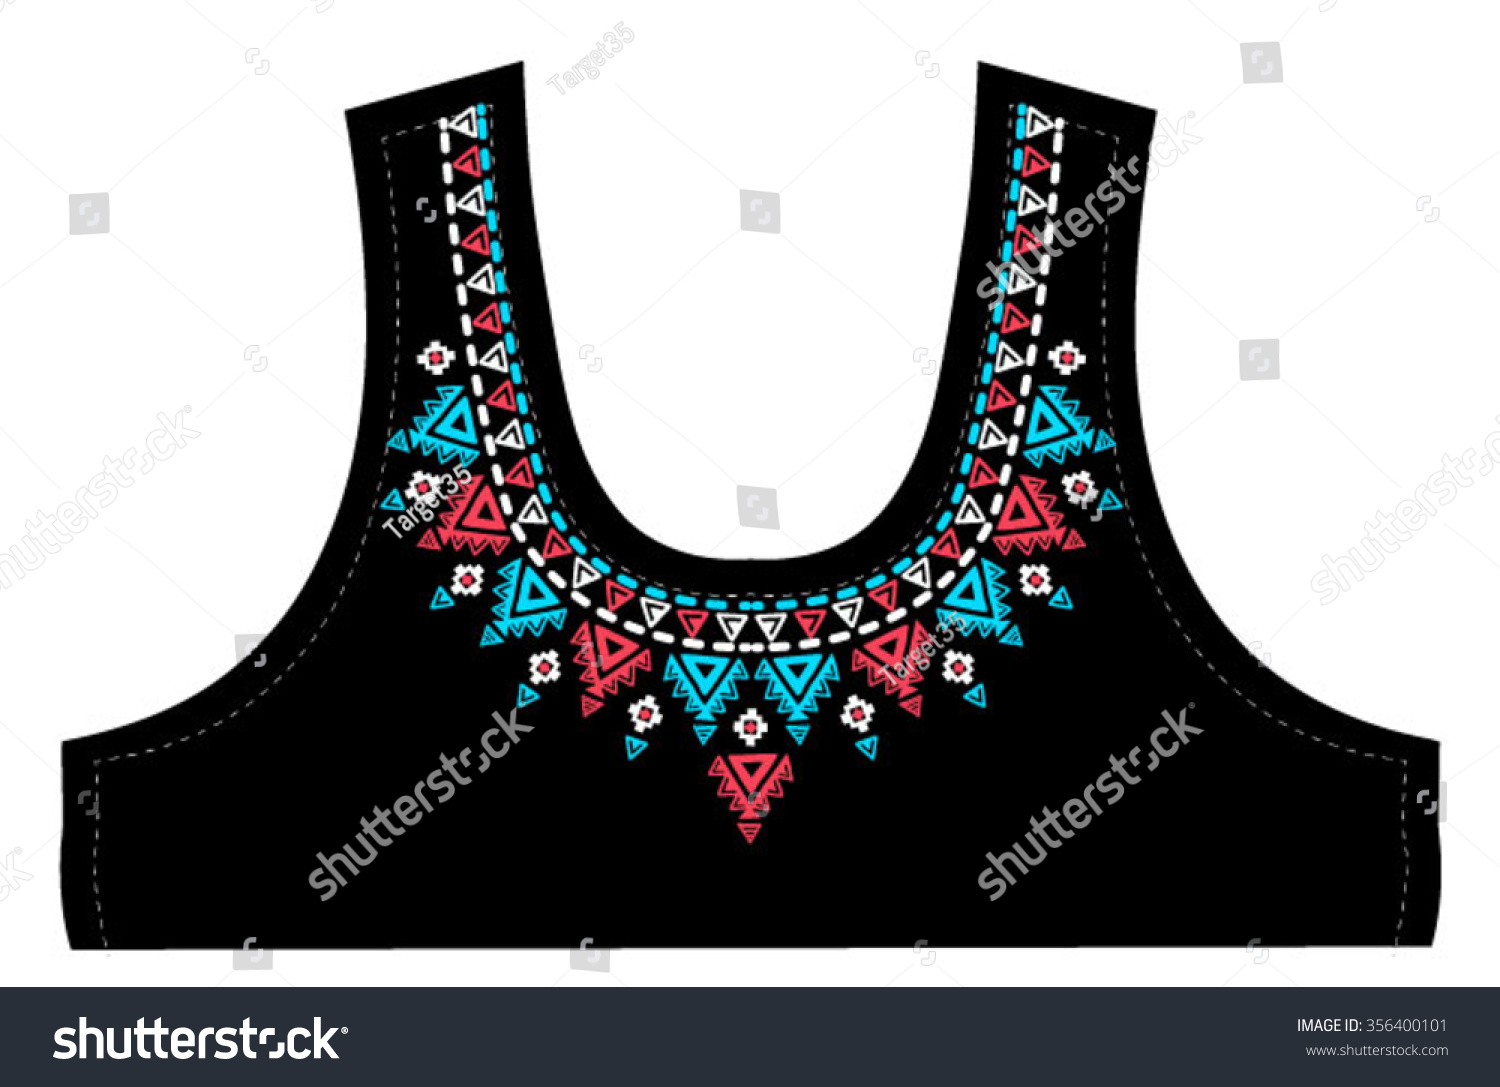 Design t shirt embroidery - Embroidery Necklace Design For T Shirt